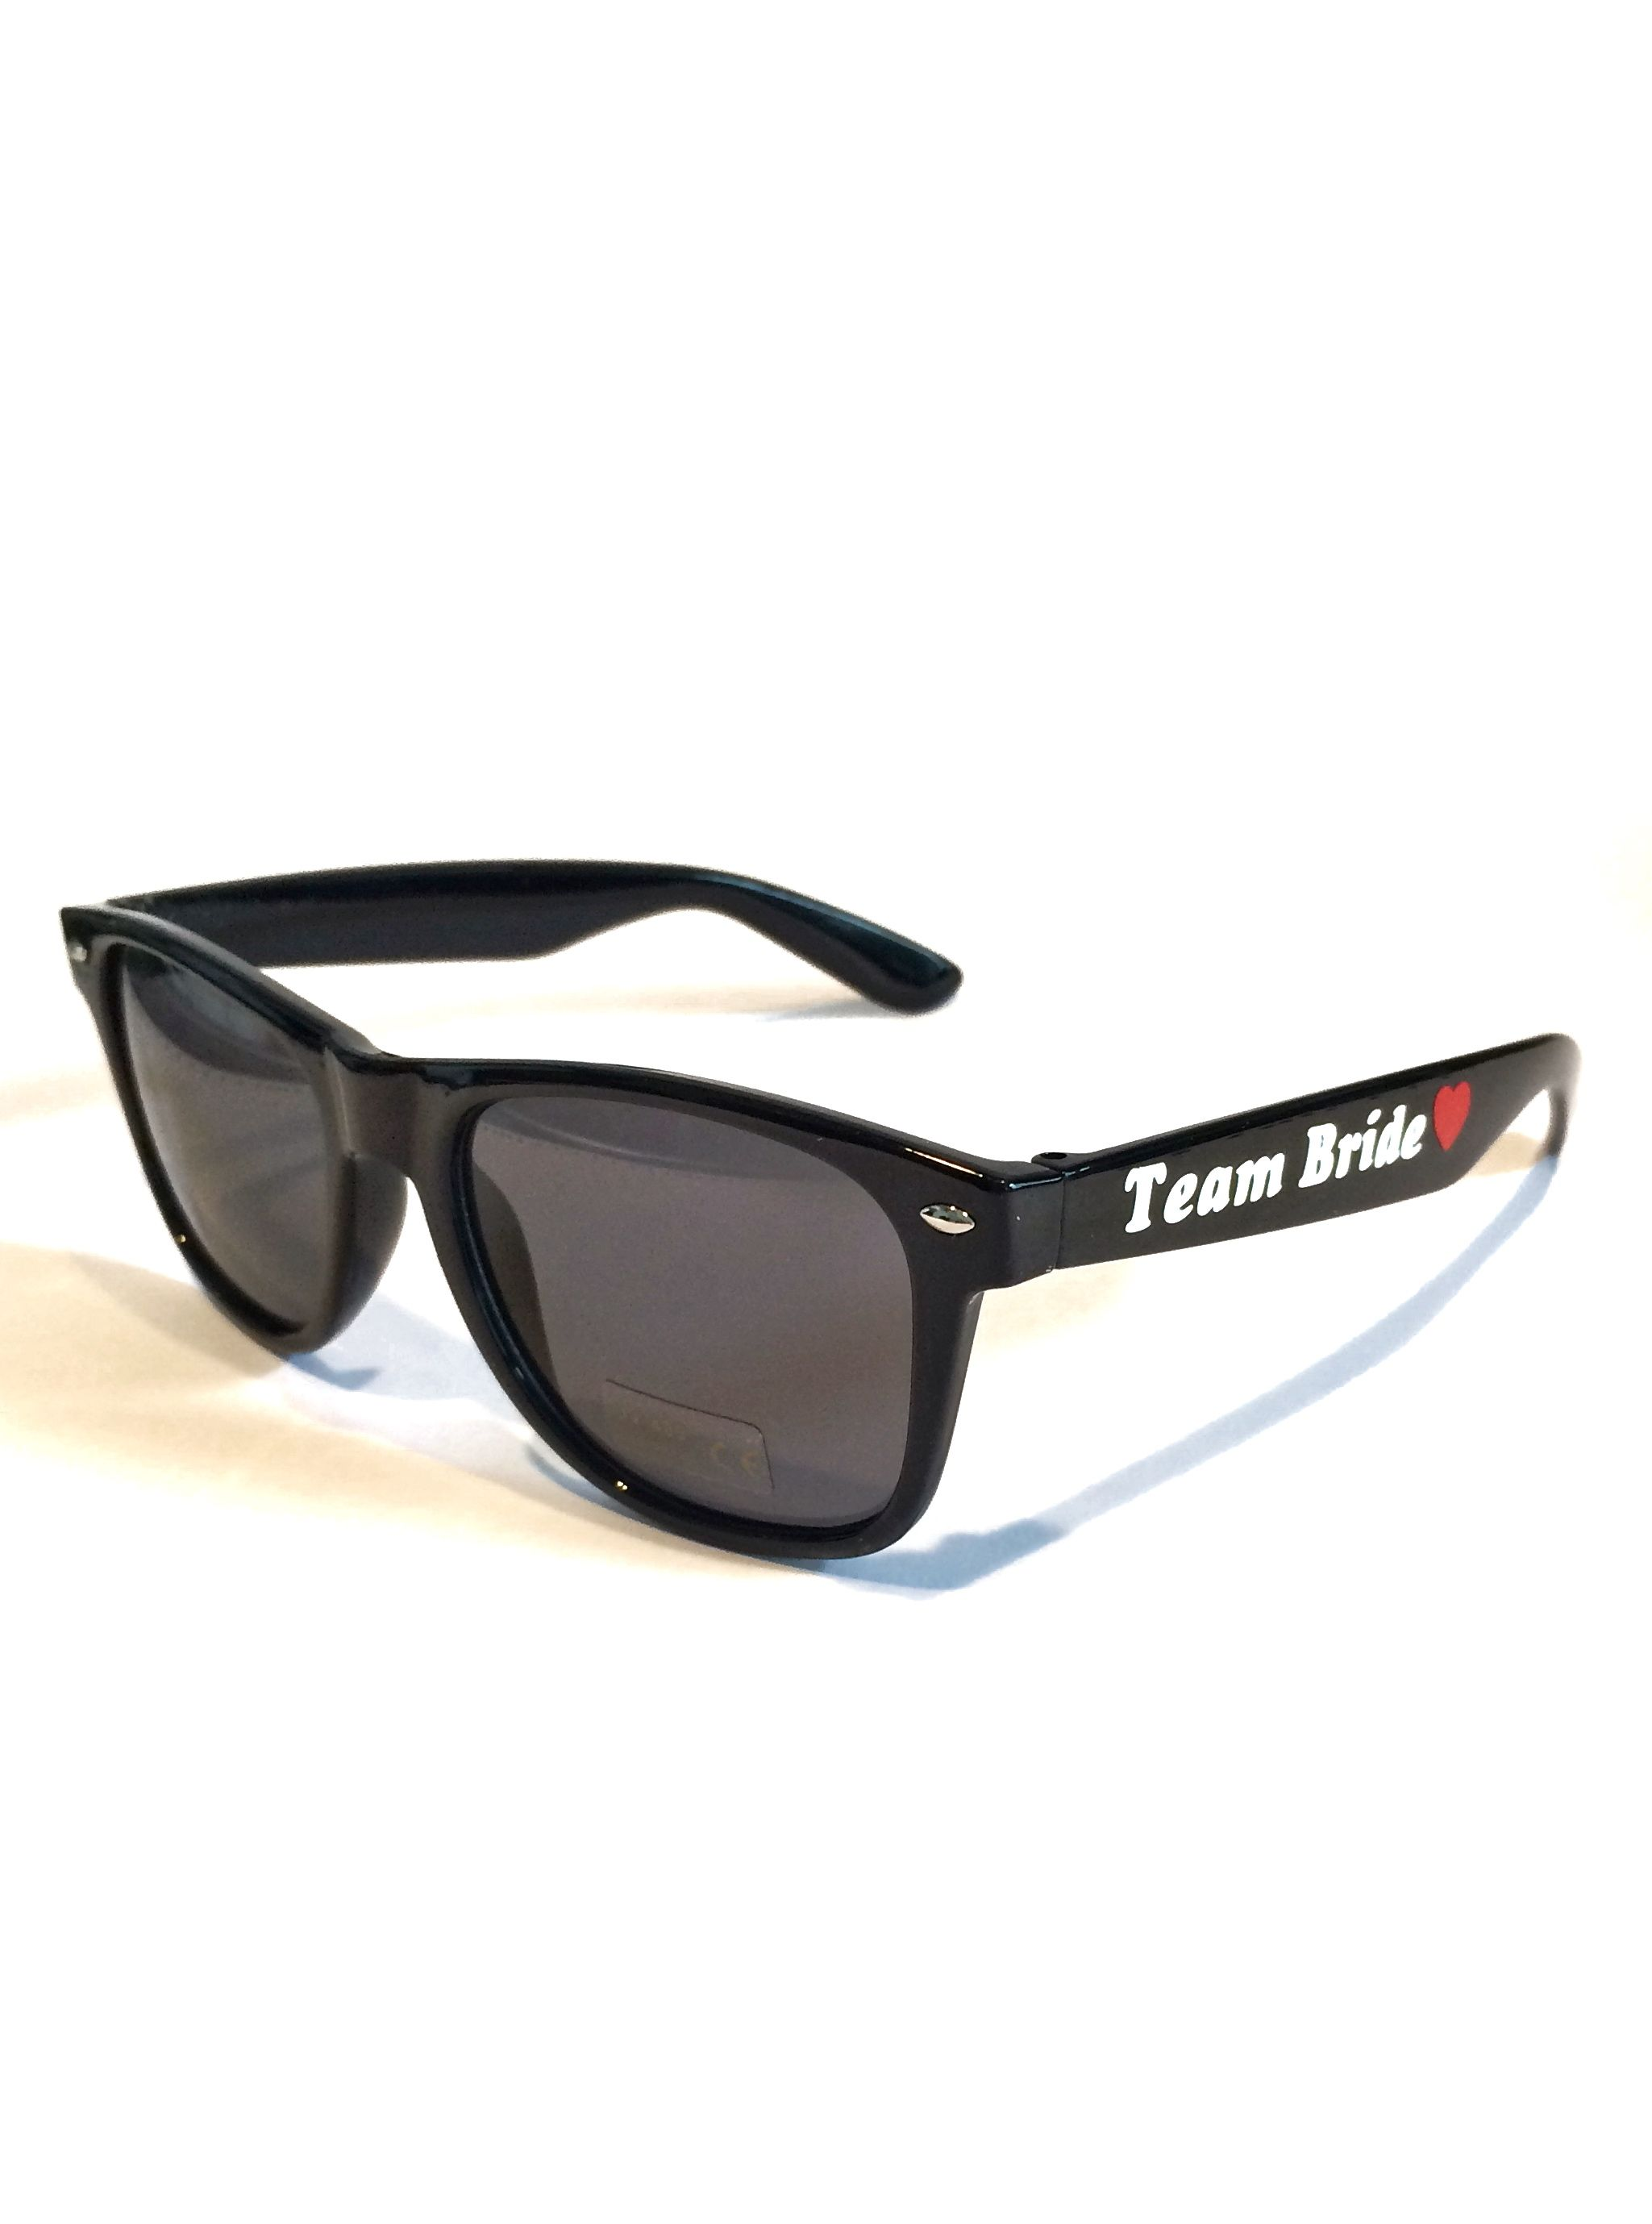 Cheap Wedding Sunglasses Black With Customized Text Ideal For Beach Weddings Reflective Colors